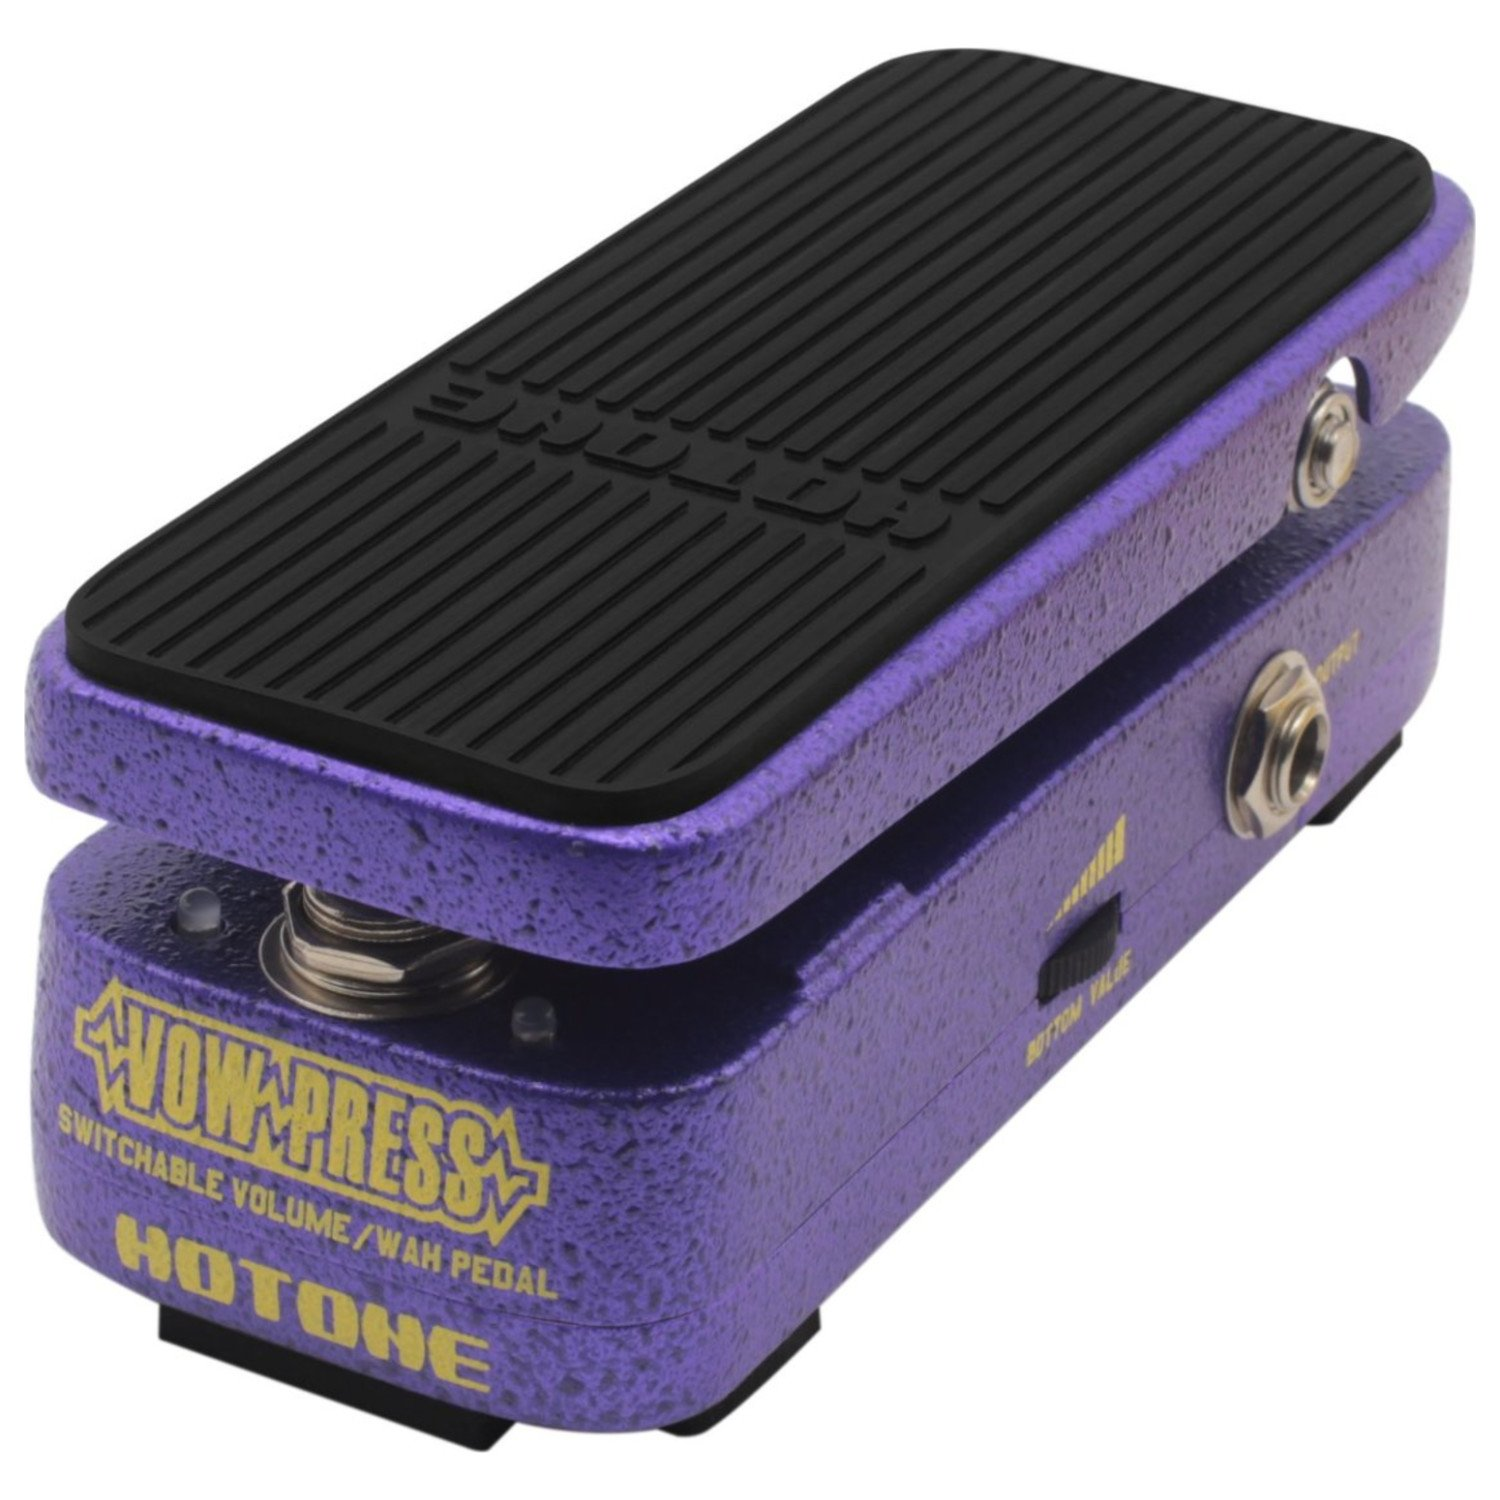 Hotone Vow Press Combo Wah/Volume Guitar Effects Pedal by Hotone